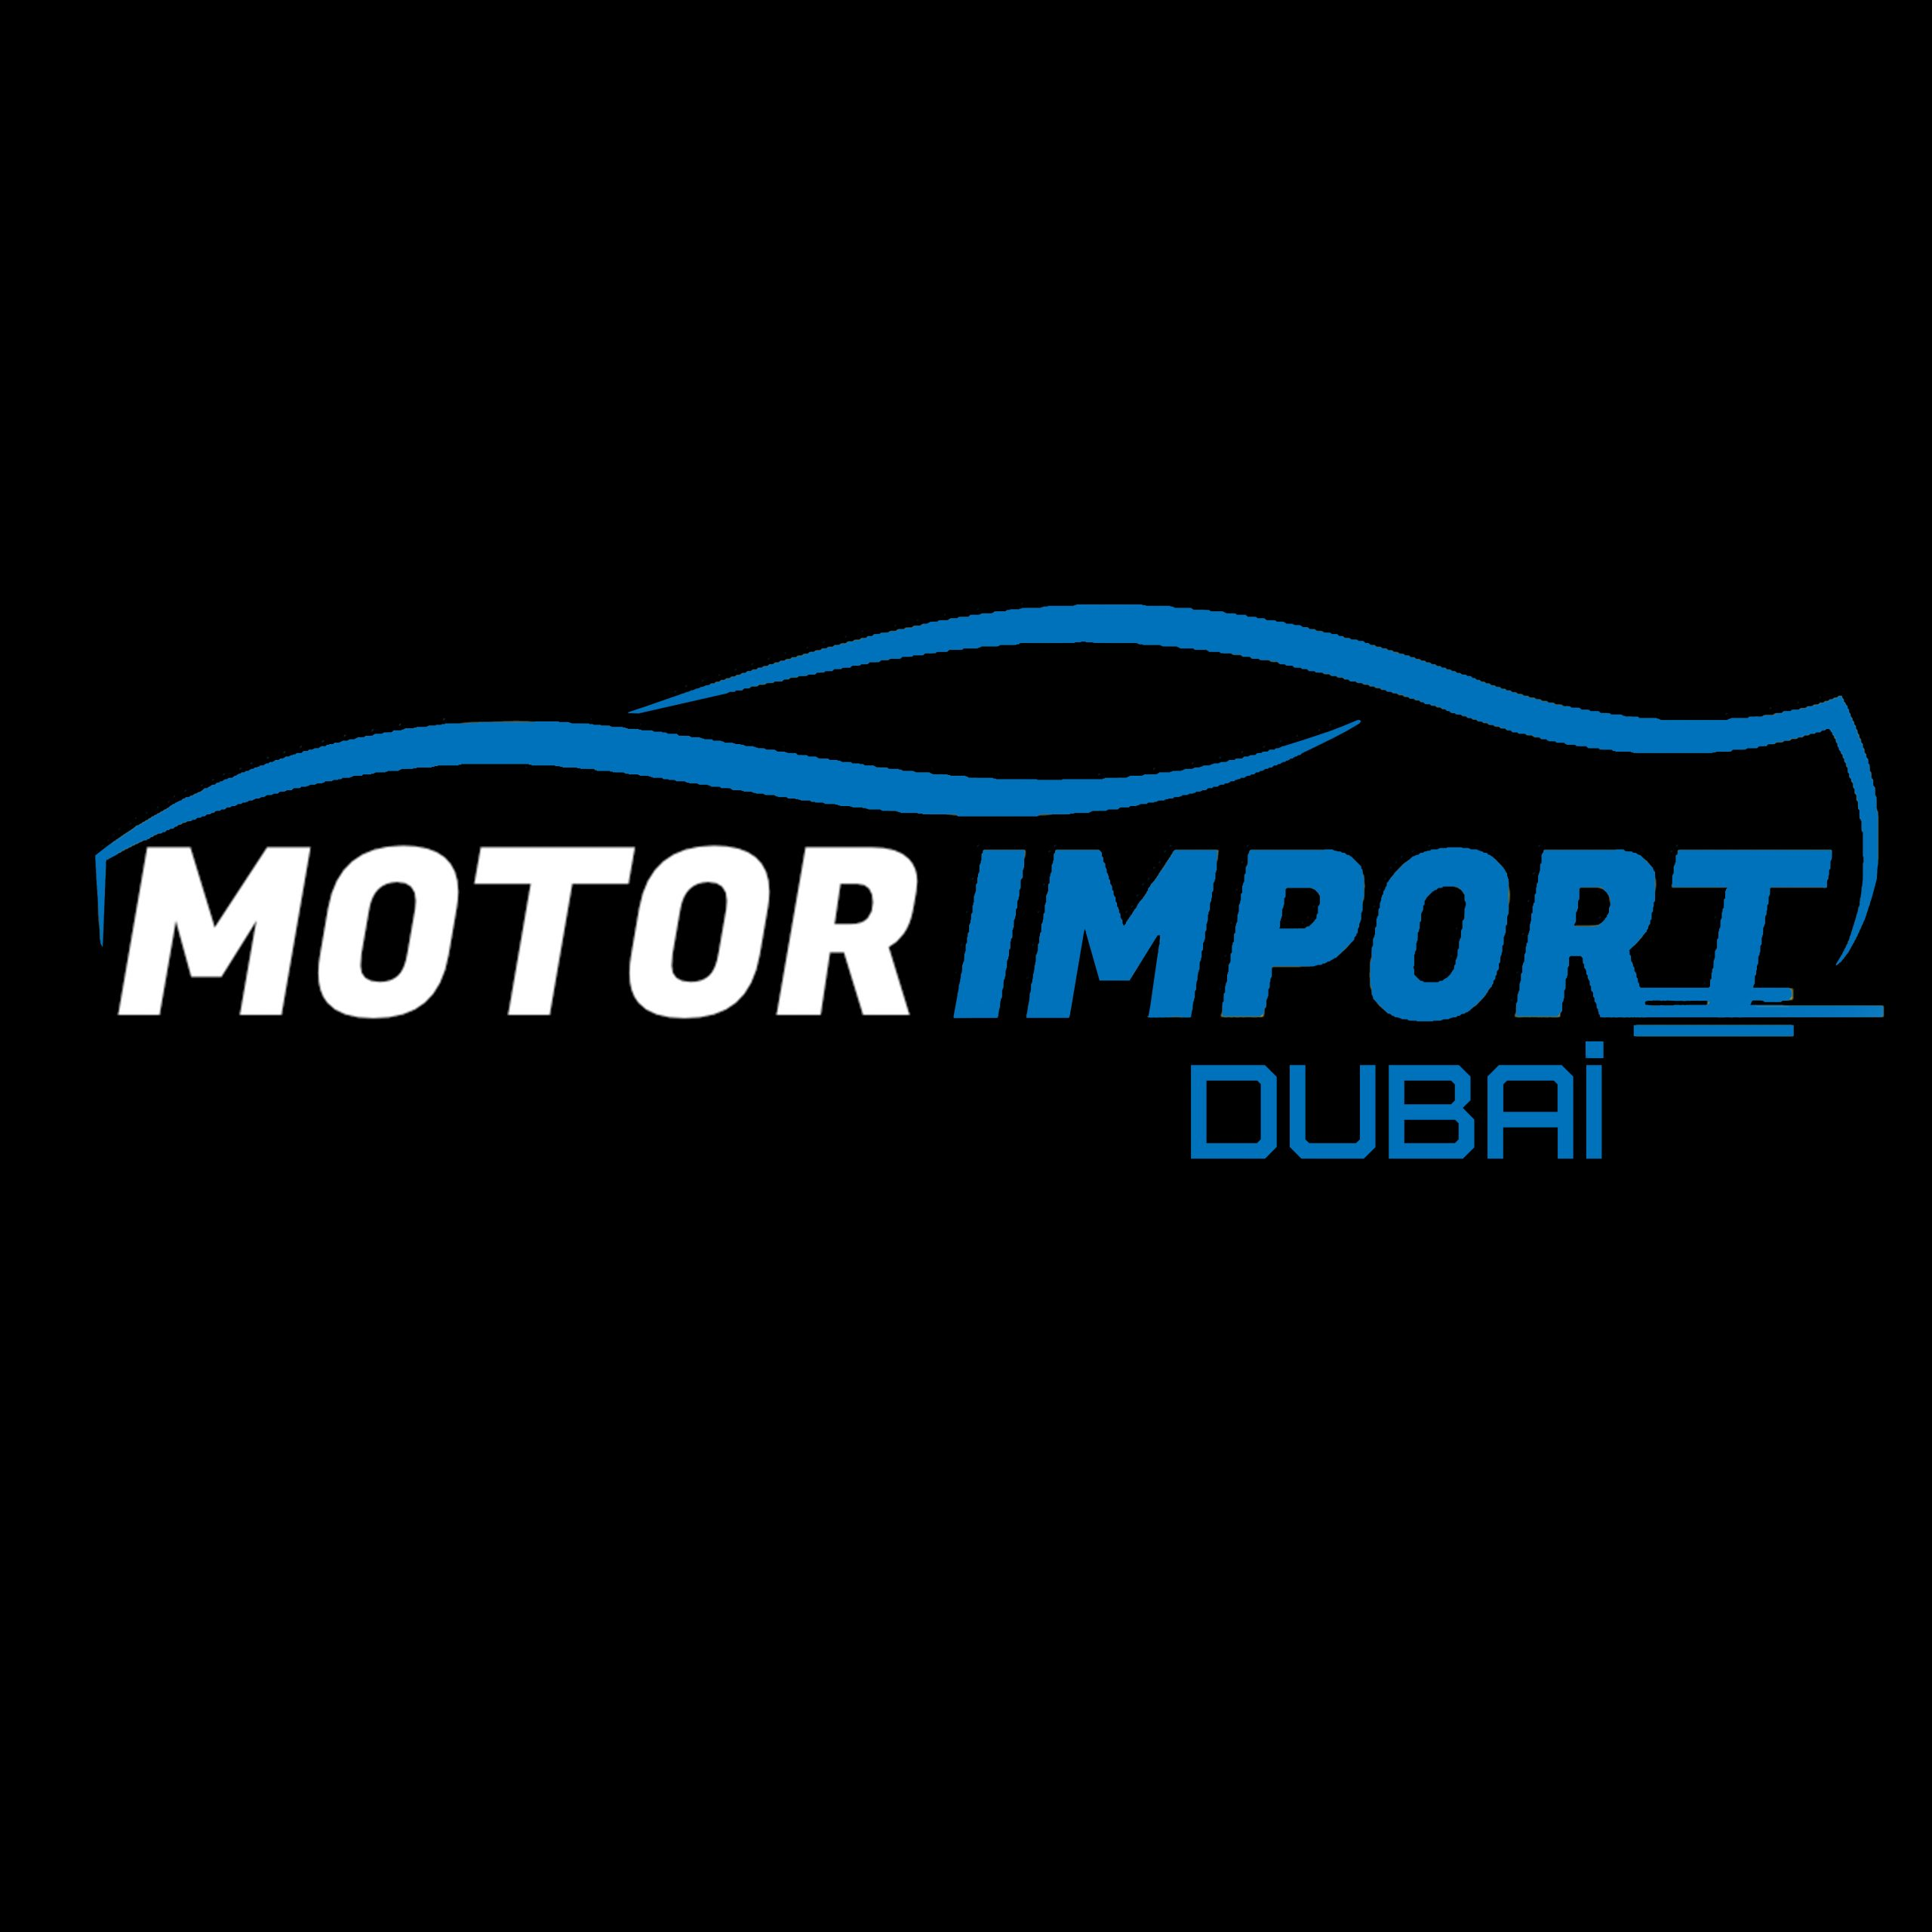 SQUARE EMPTYMOTOR IMPORT DUBAI scaled - LEXUS DUBAI importation voiture Dubai LEXUS importation vehicule emirats arabe unis motorimport